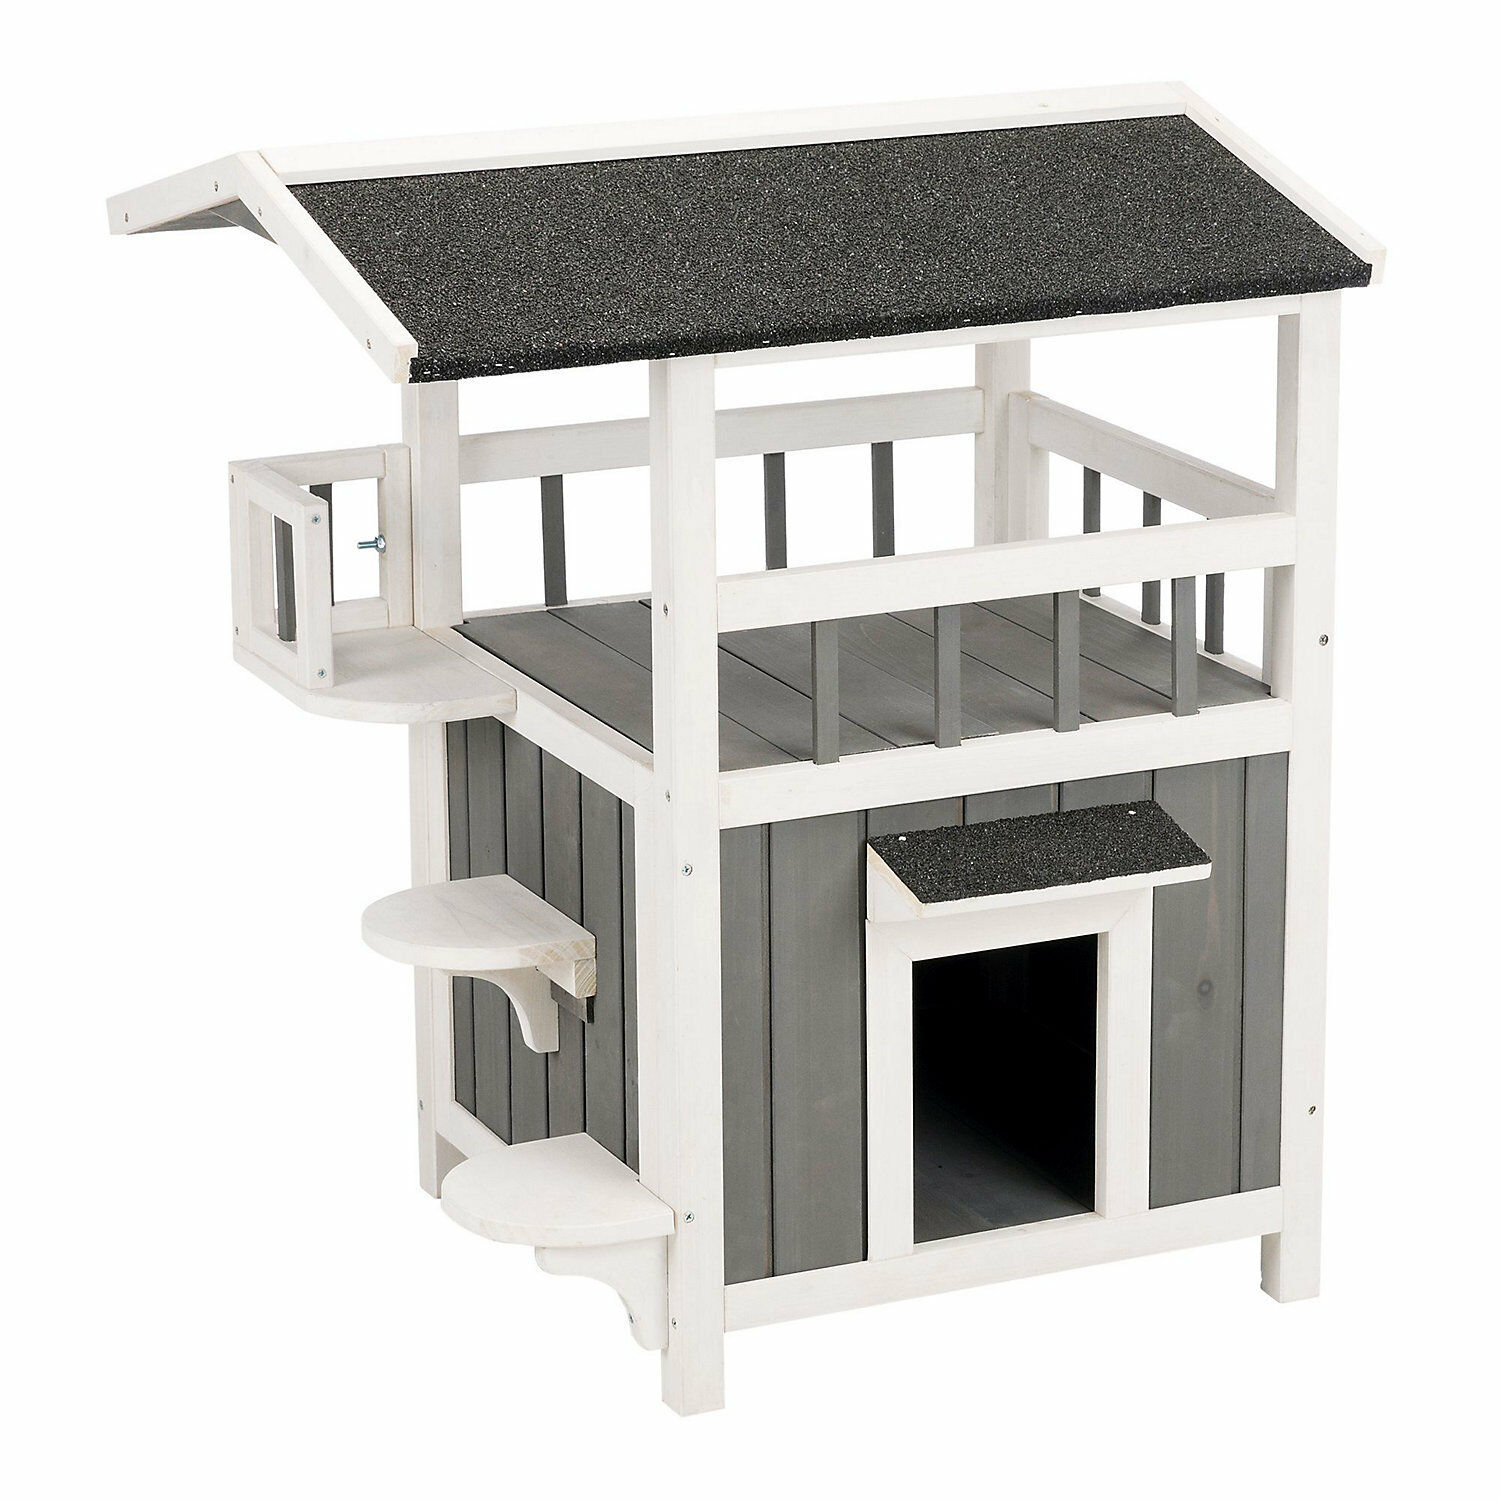 Trixie Natura Pet's Home with Shade Grey Cat Furniture, 29.75  H